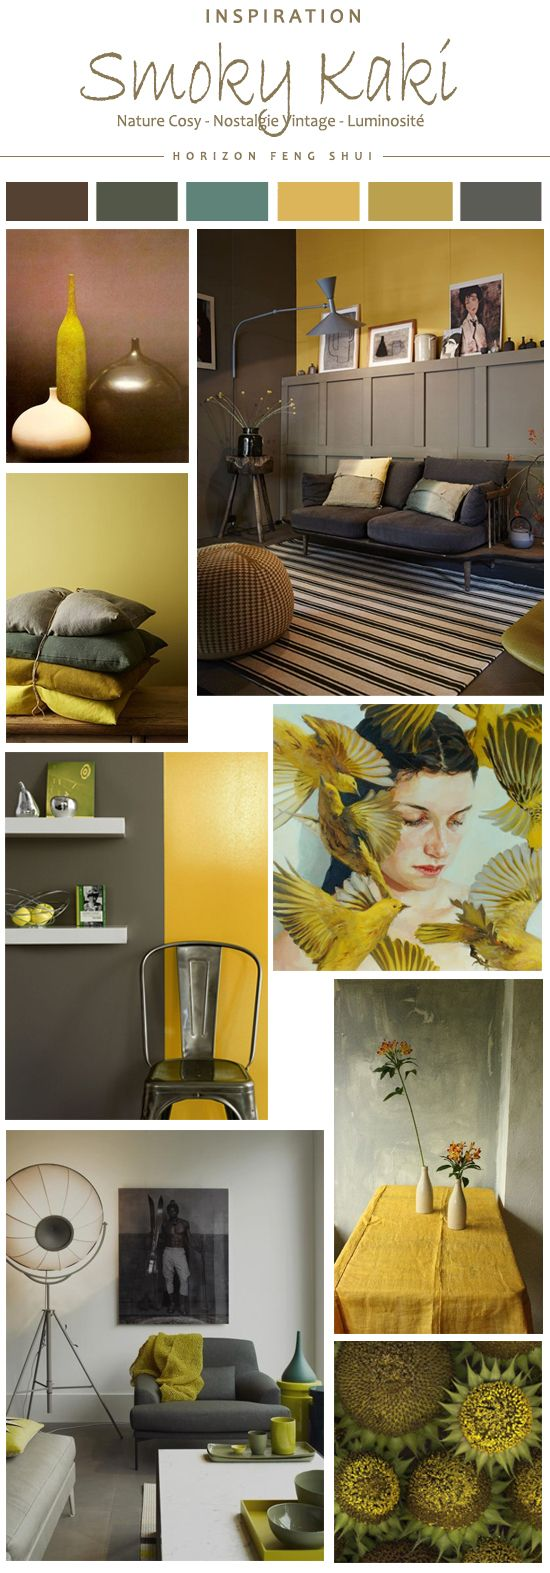 Tendance couleur smoky kaki jaune moutarde ocre gris nature vintage trendid trends 15 16 17 - Couleur ocre jaune ...